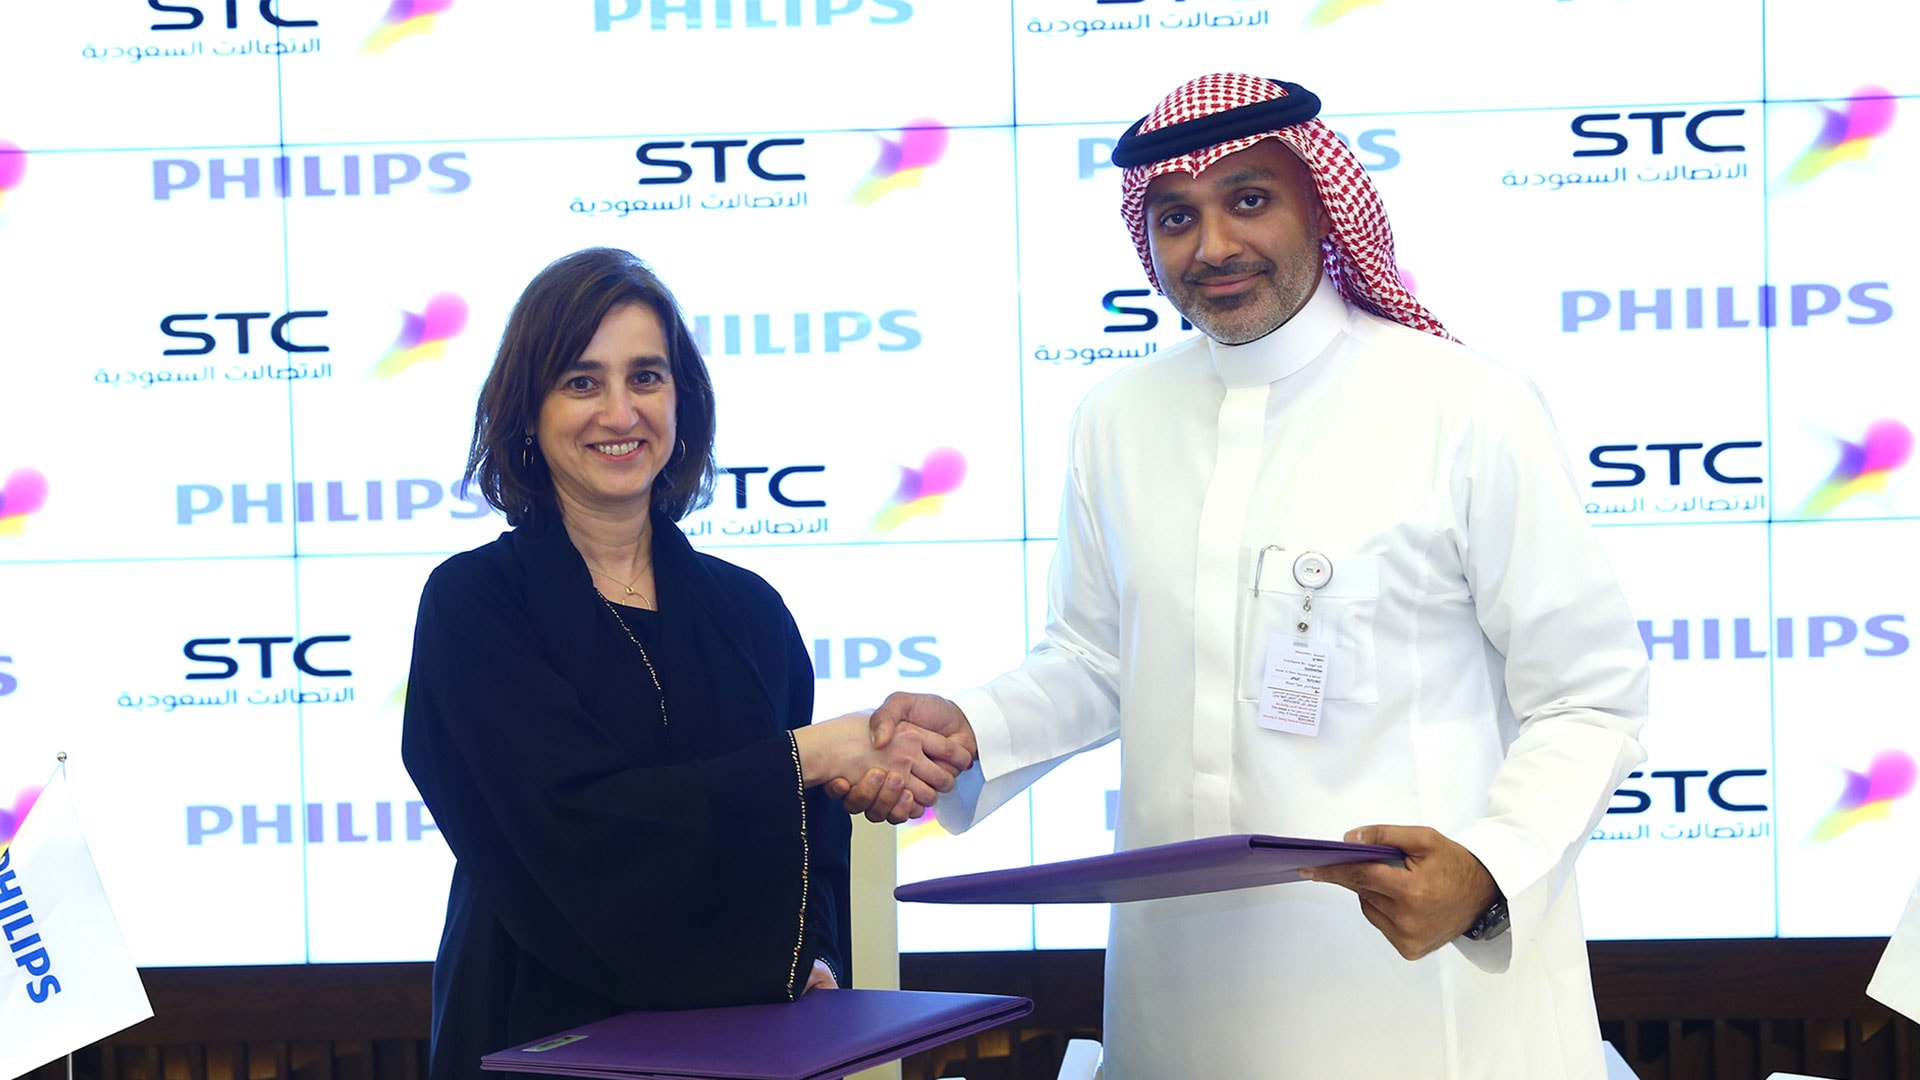 STC and Philips